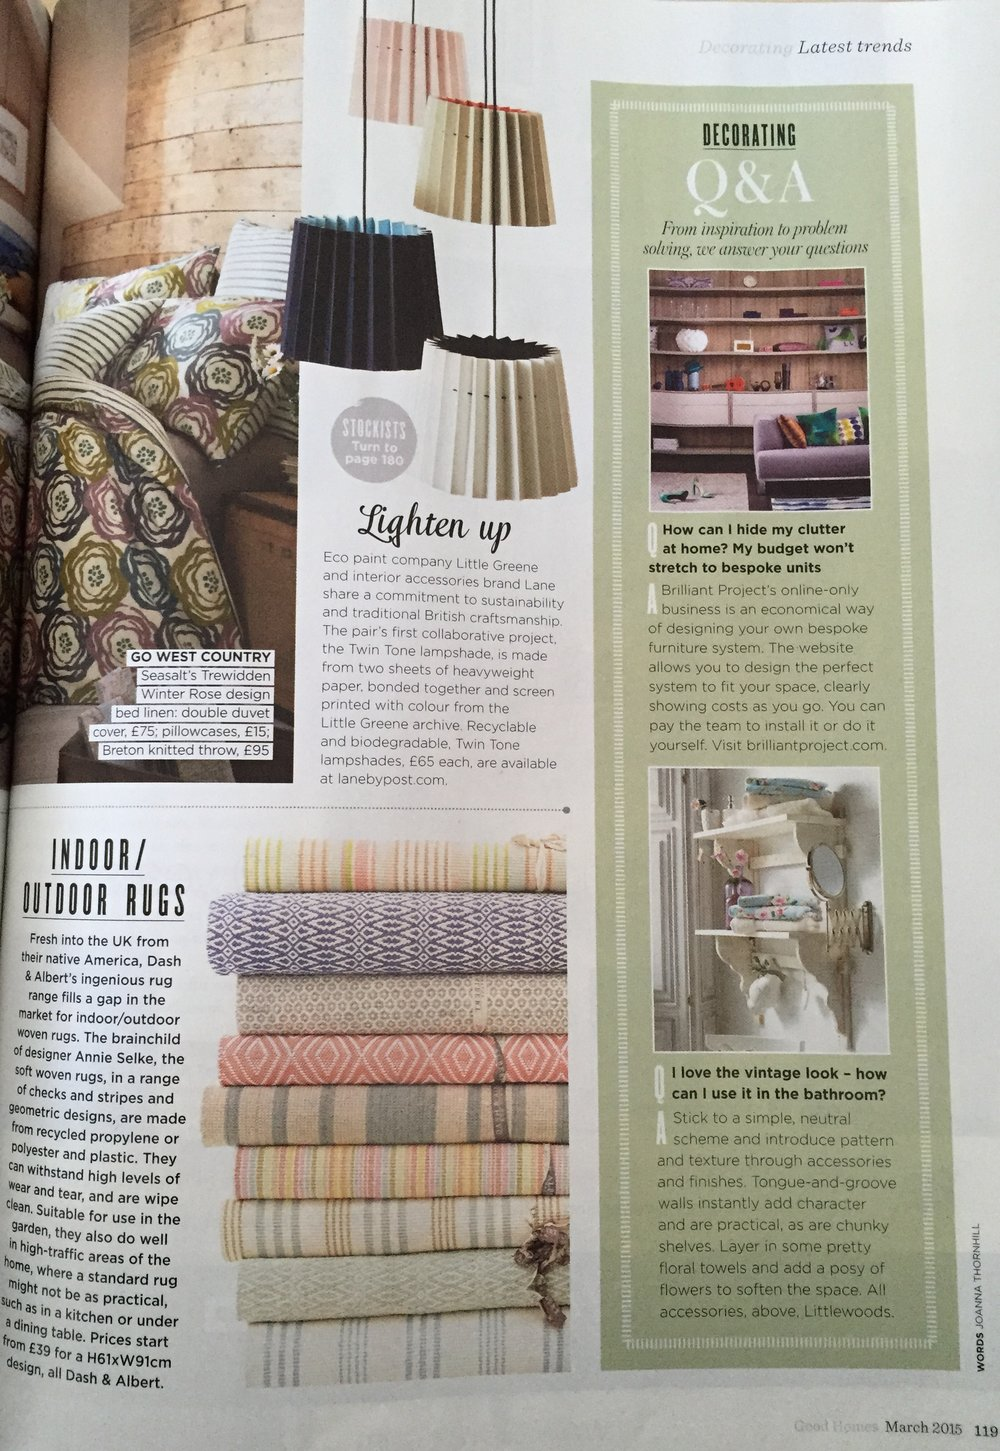 Good Homes, March 2015,  Lane & Little Greene Twin Tone Lampshades